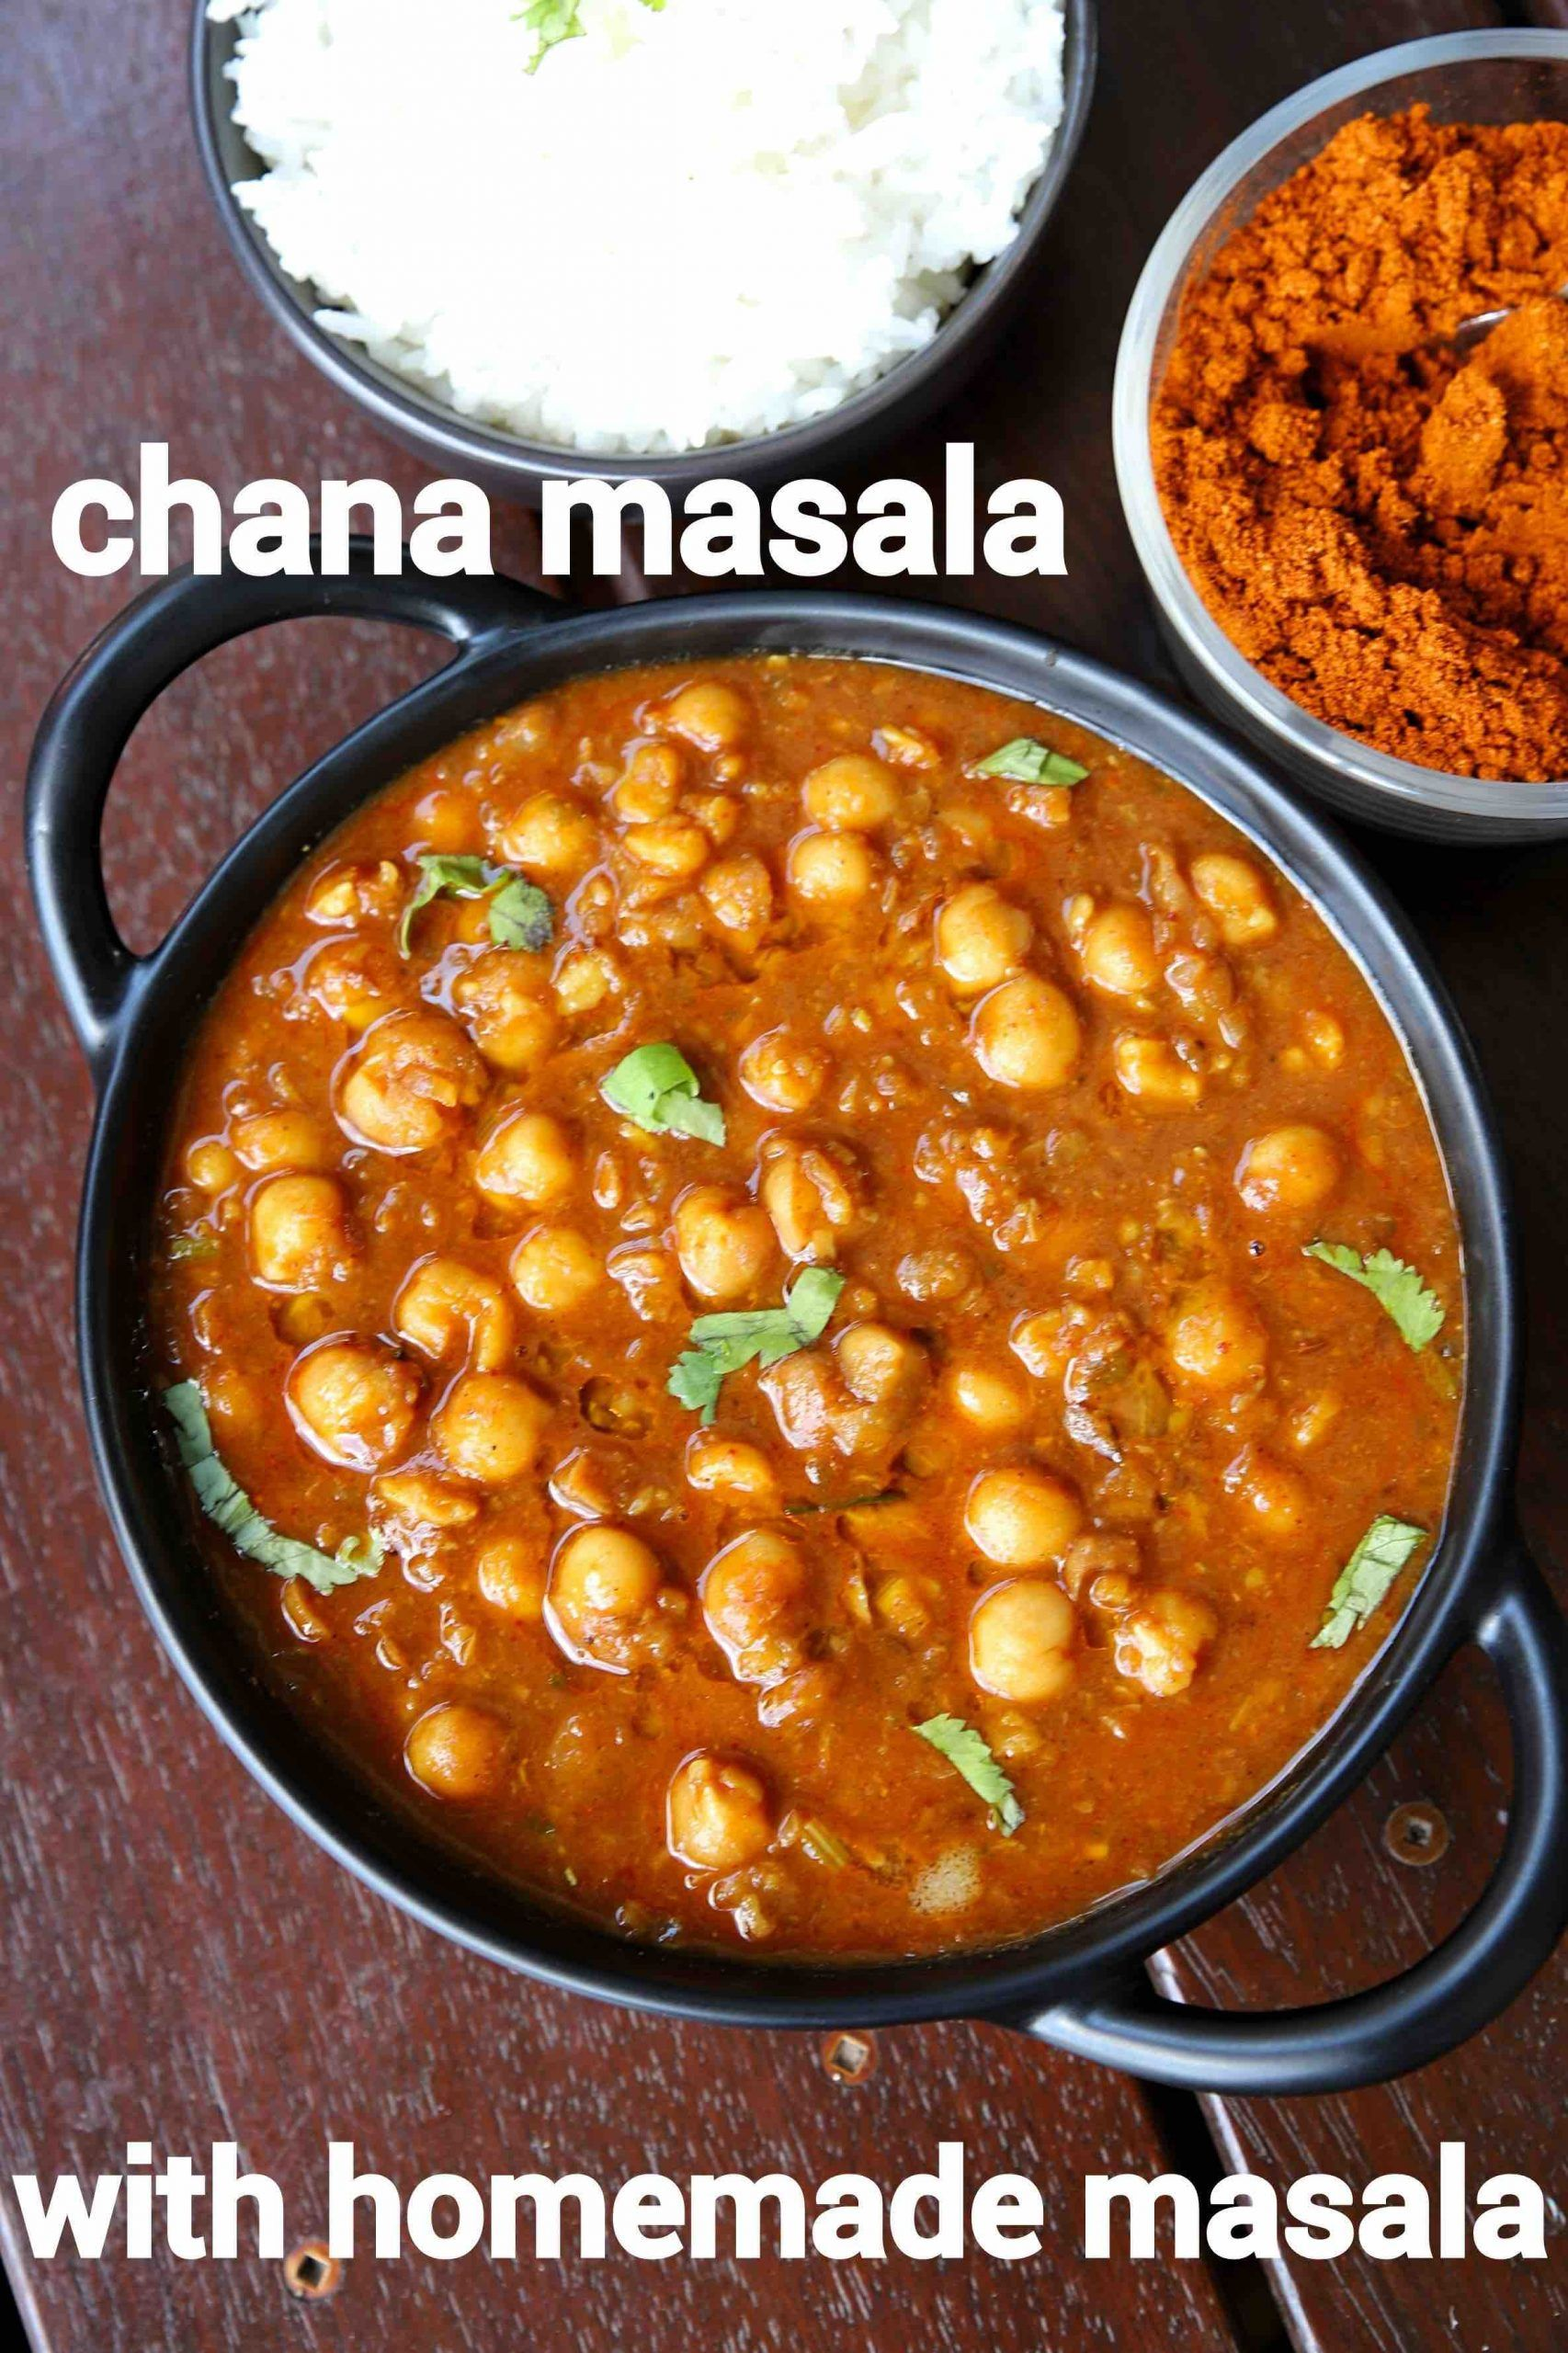 chana masala recipe | chickpea masala | chana masa